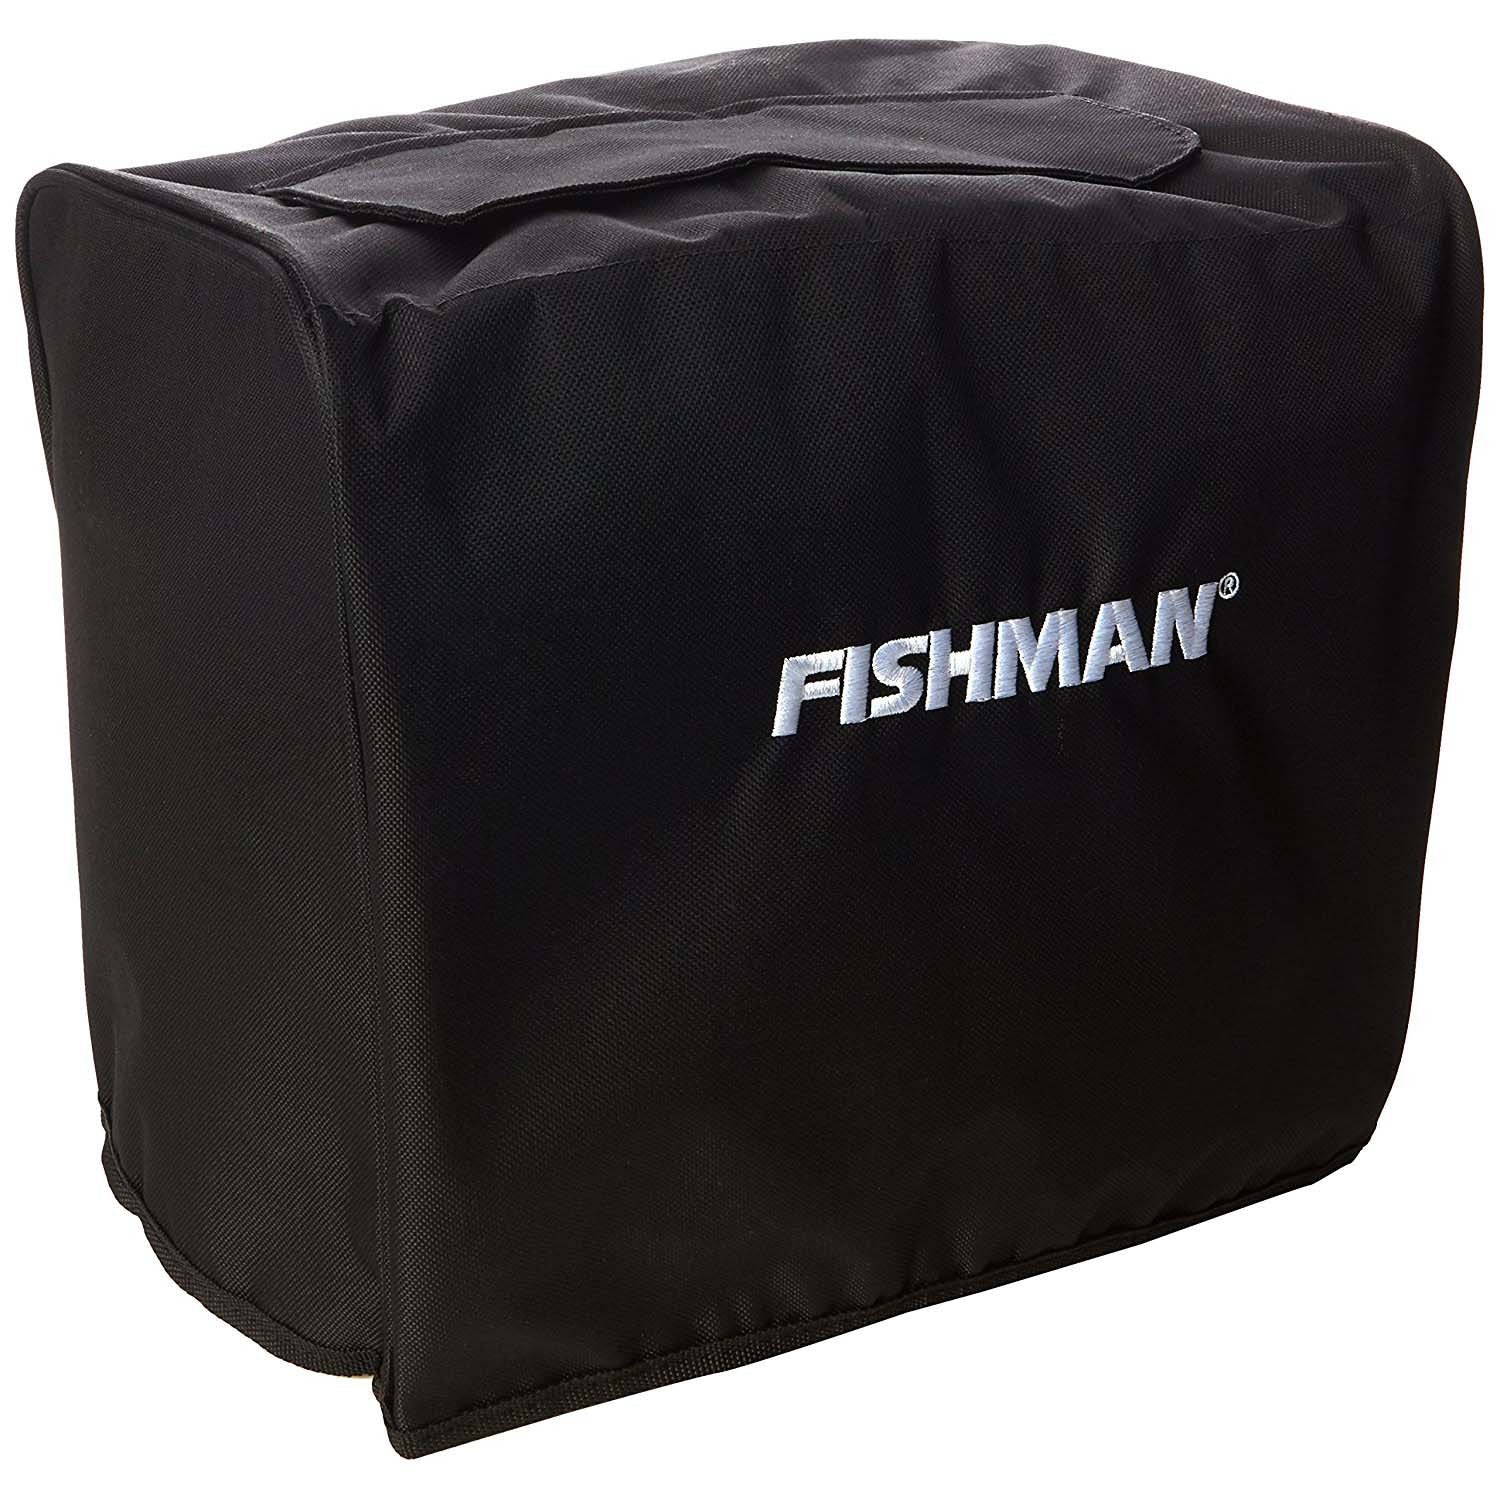 Fishman Loudbox Mini Slipcover